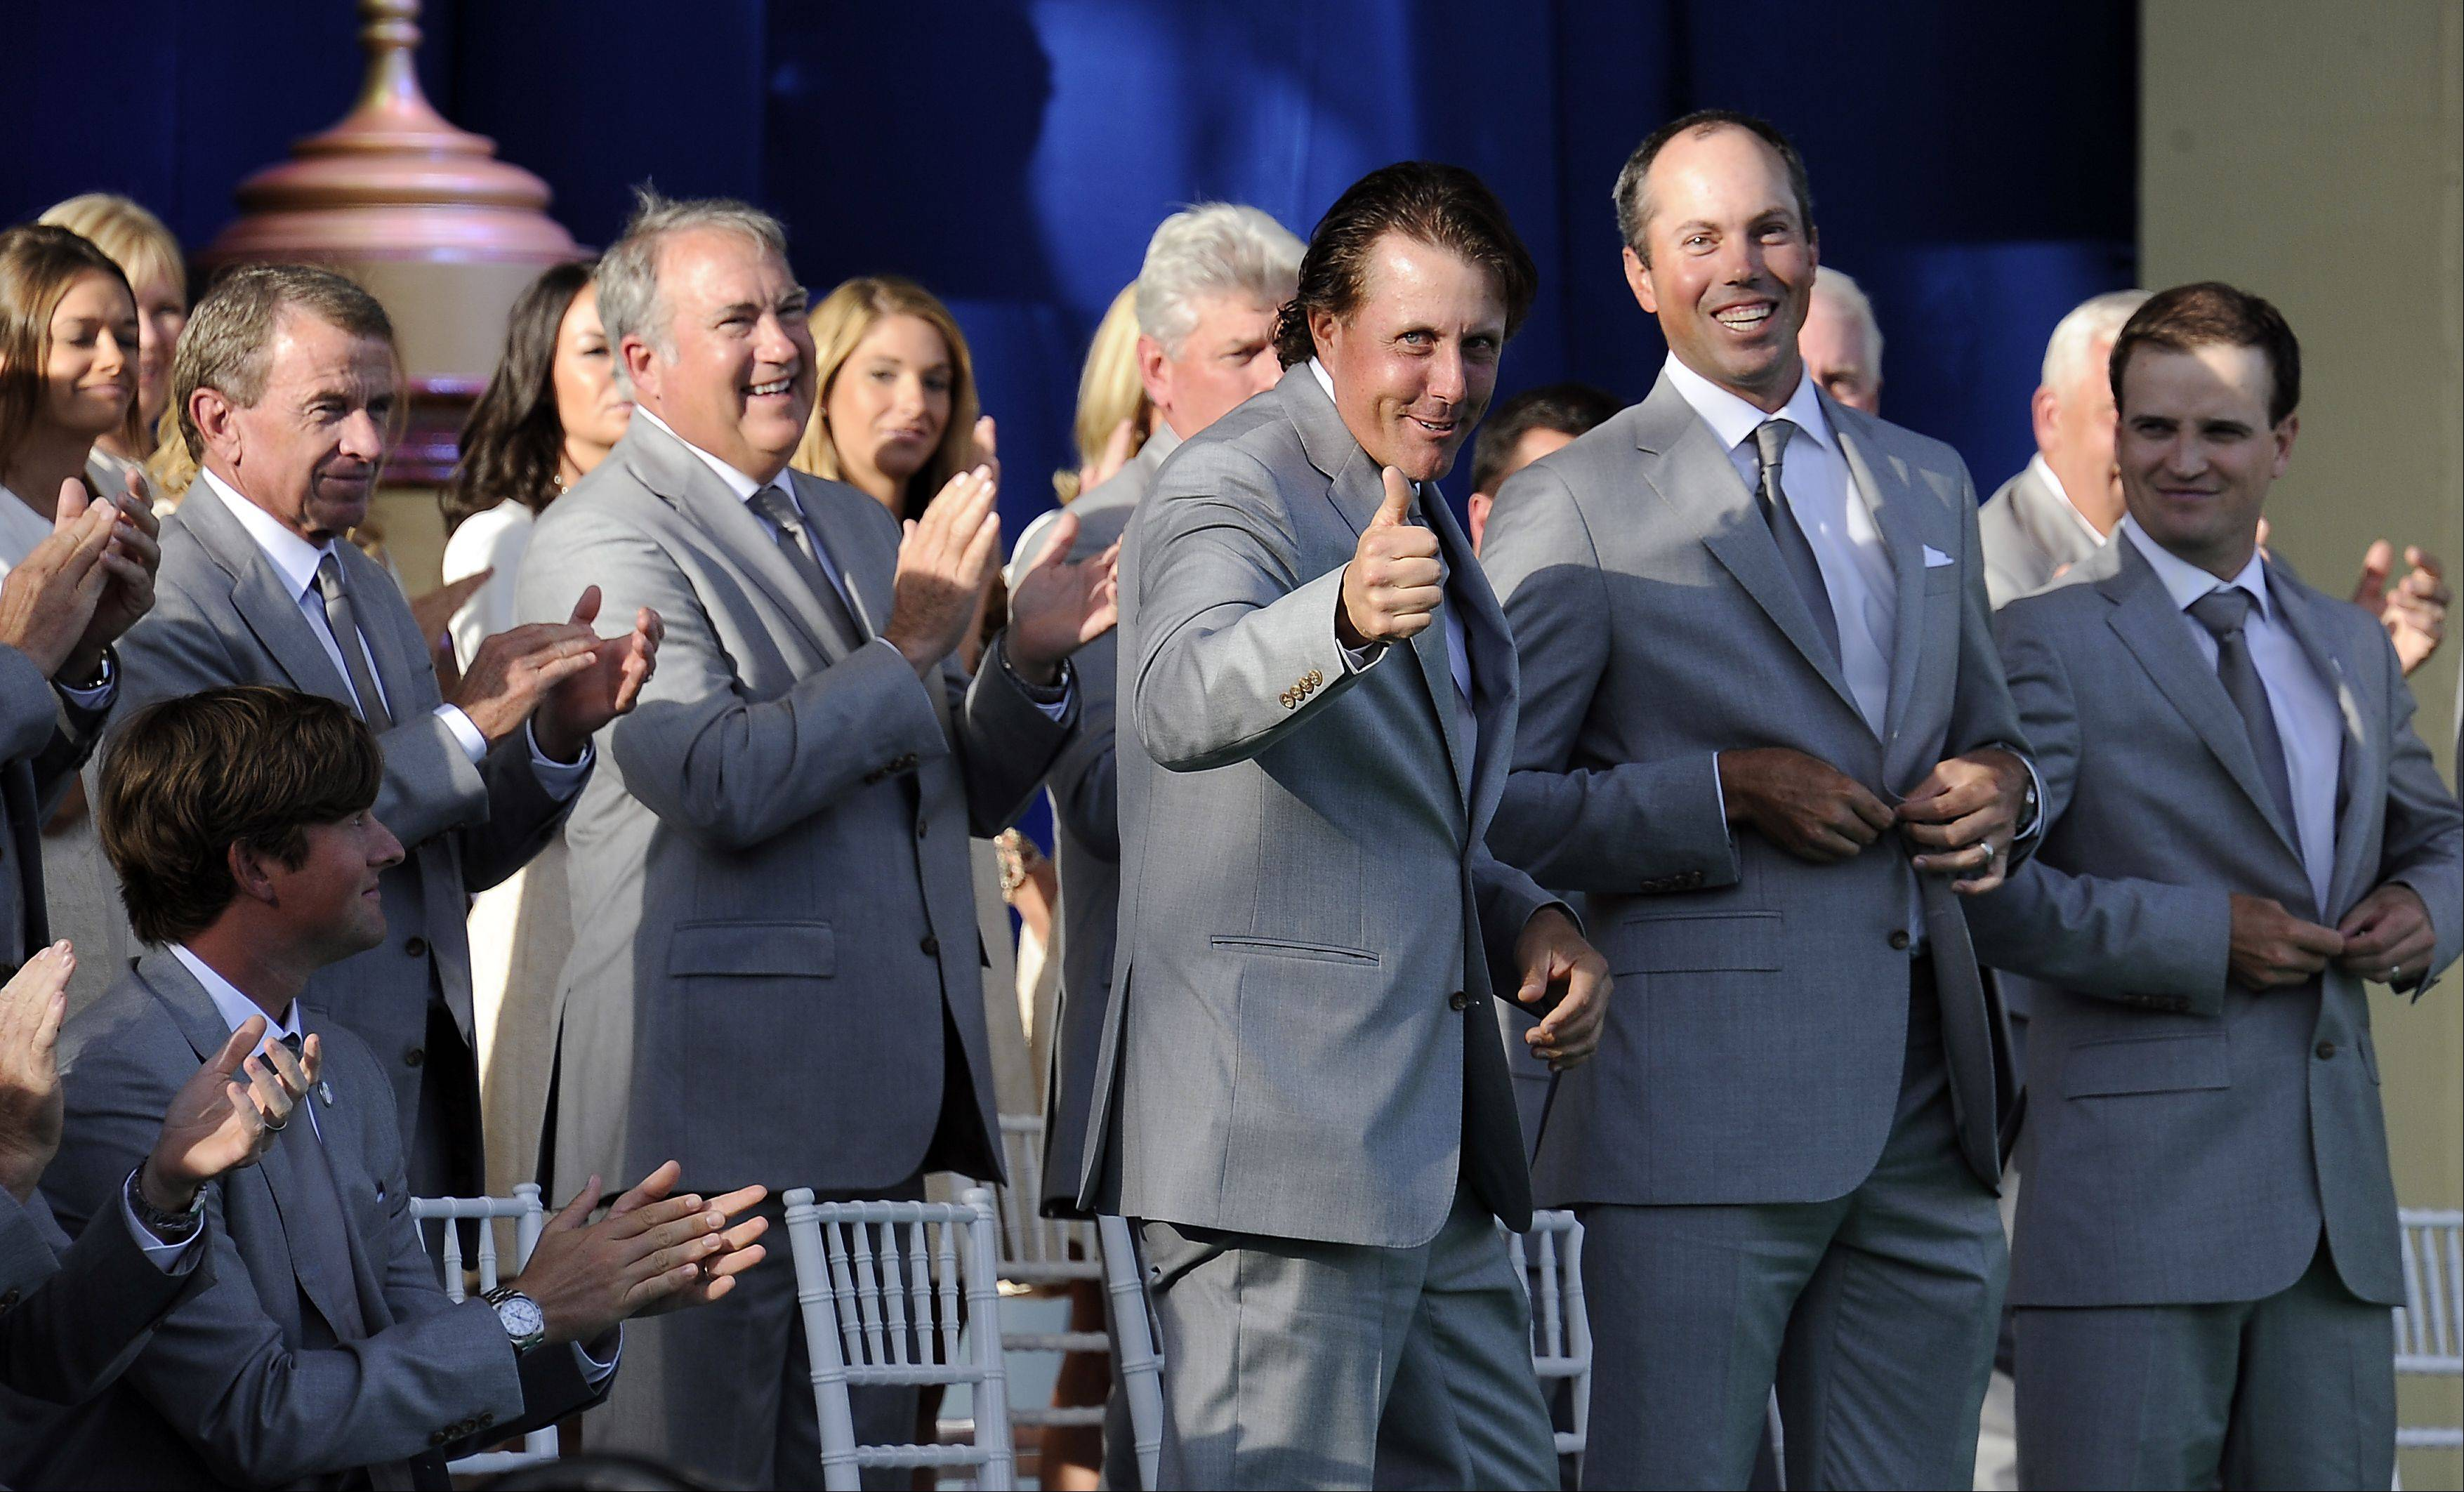 United States team member Phil Mickelson gives a thumbs-up to the fans during the opening ceremonies of Ryder Cup at Medinah on Thursday.